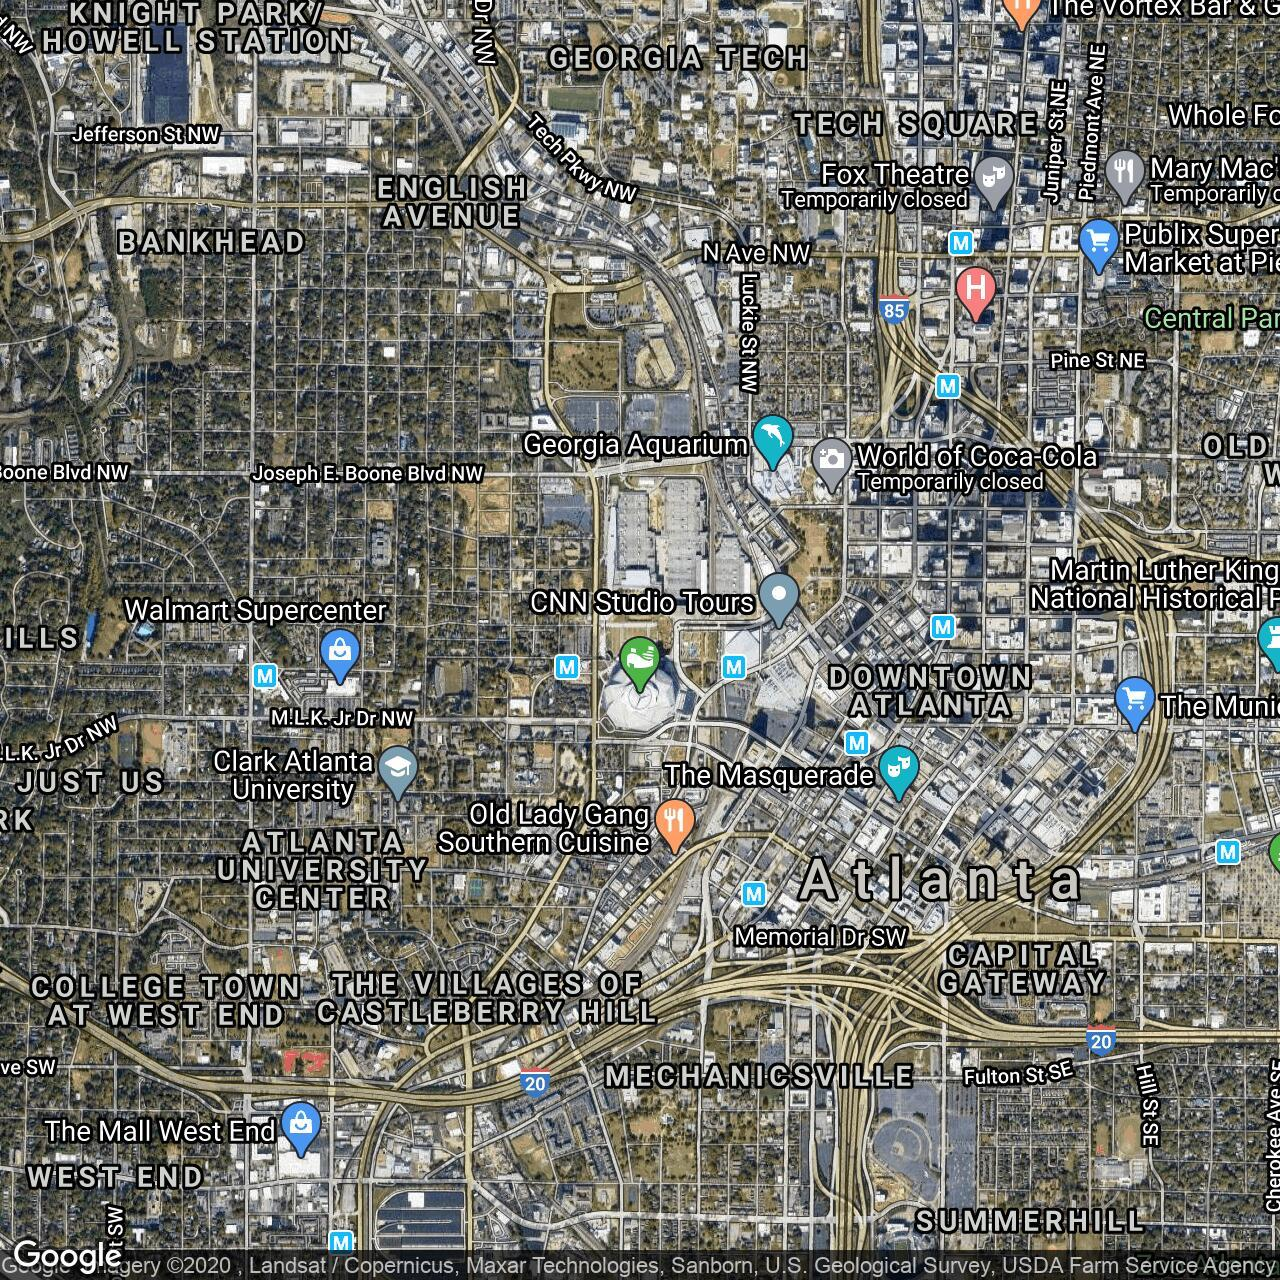 gila river arena map, amicalola falls georgia map, heinz field map, tokyo dome city map, mapquest georgia map, edward jones dome map, superdome map, world of coke map, covington georgia map, target center map, terminus georgia map, tacoma dome parking lot map, cobb county georgia map, georgia state university map, carrier dome map, the palace of auburn hills map, north georgia premium outlets map, royal farms arena map, plains georgia map, georgia tech map, on georgia dome map